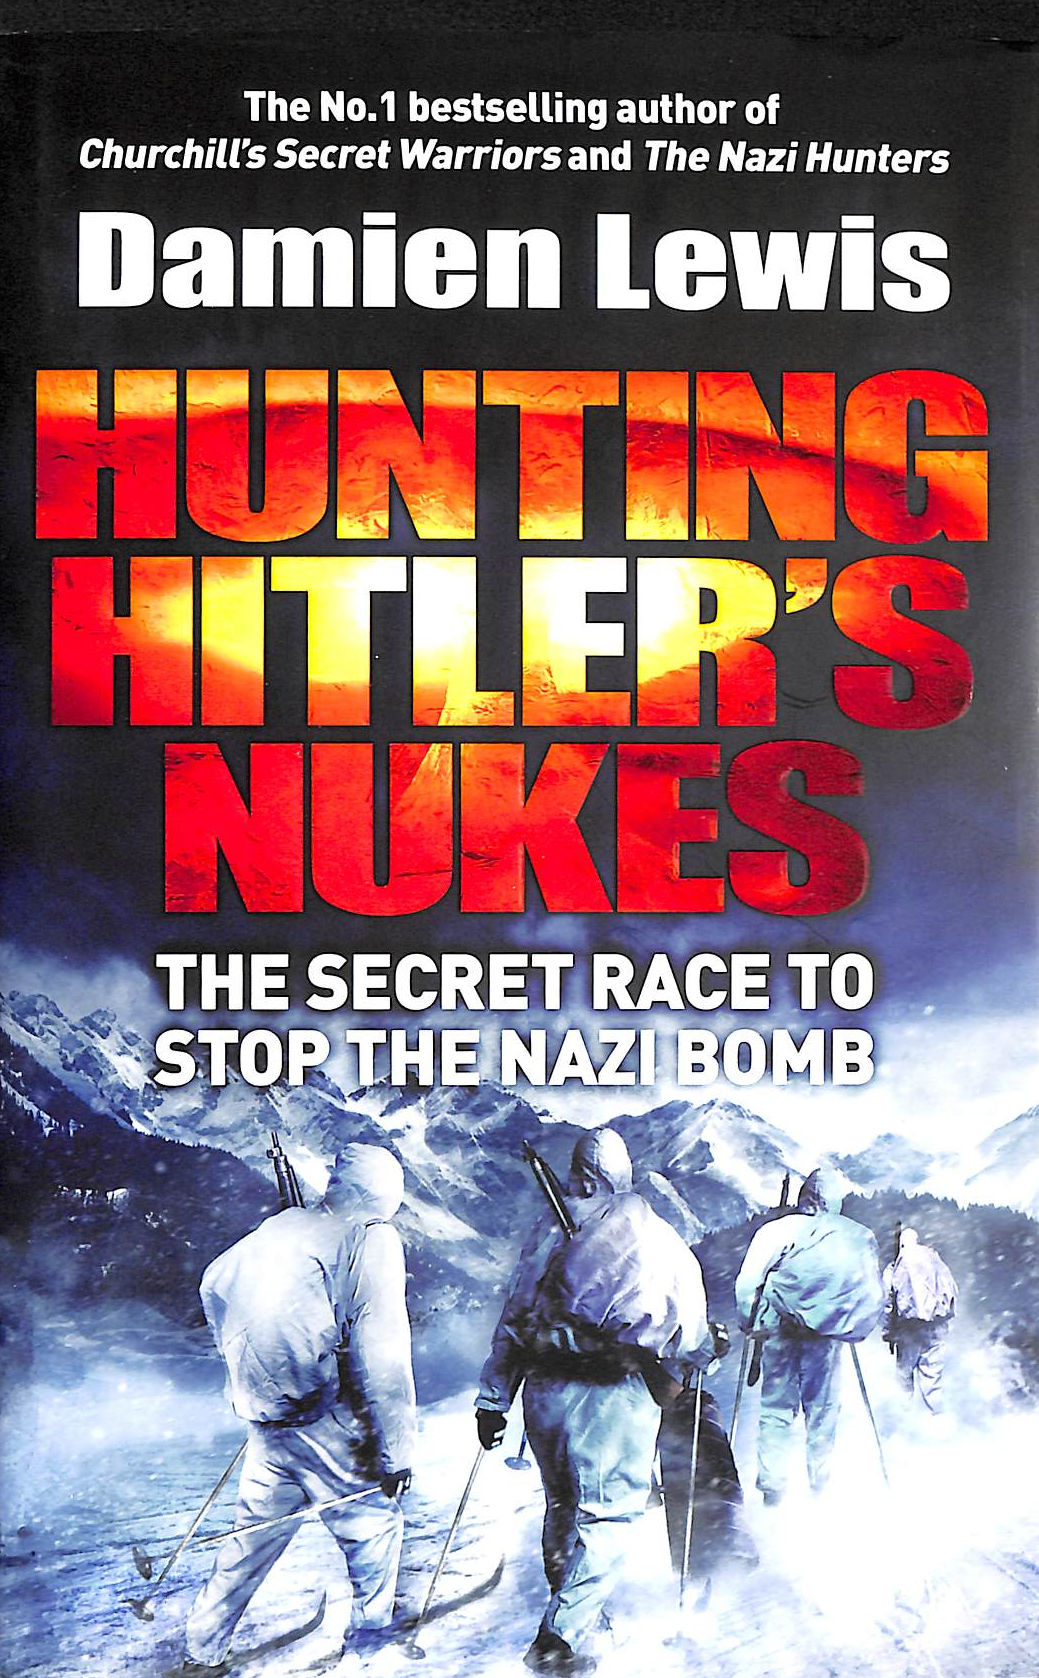 Image for Hunting Hitler's Nukes: The Secret Mission To Sabotage Hitler's Deadliest Weapon